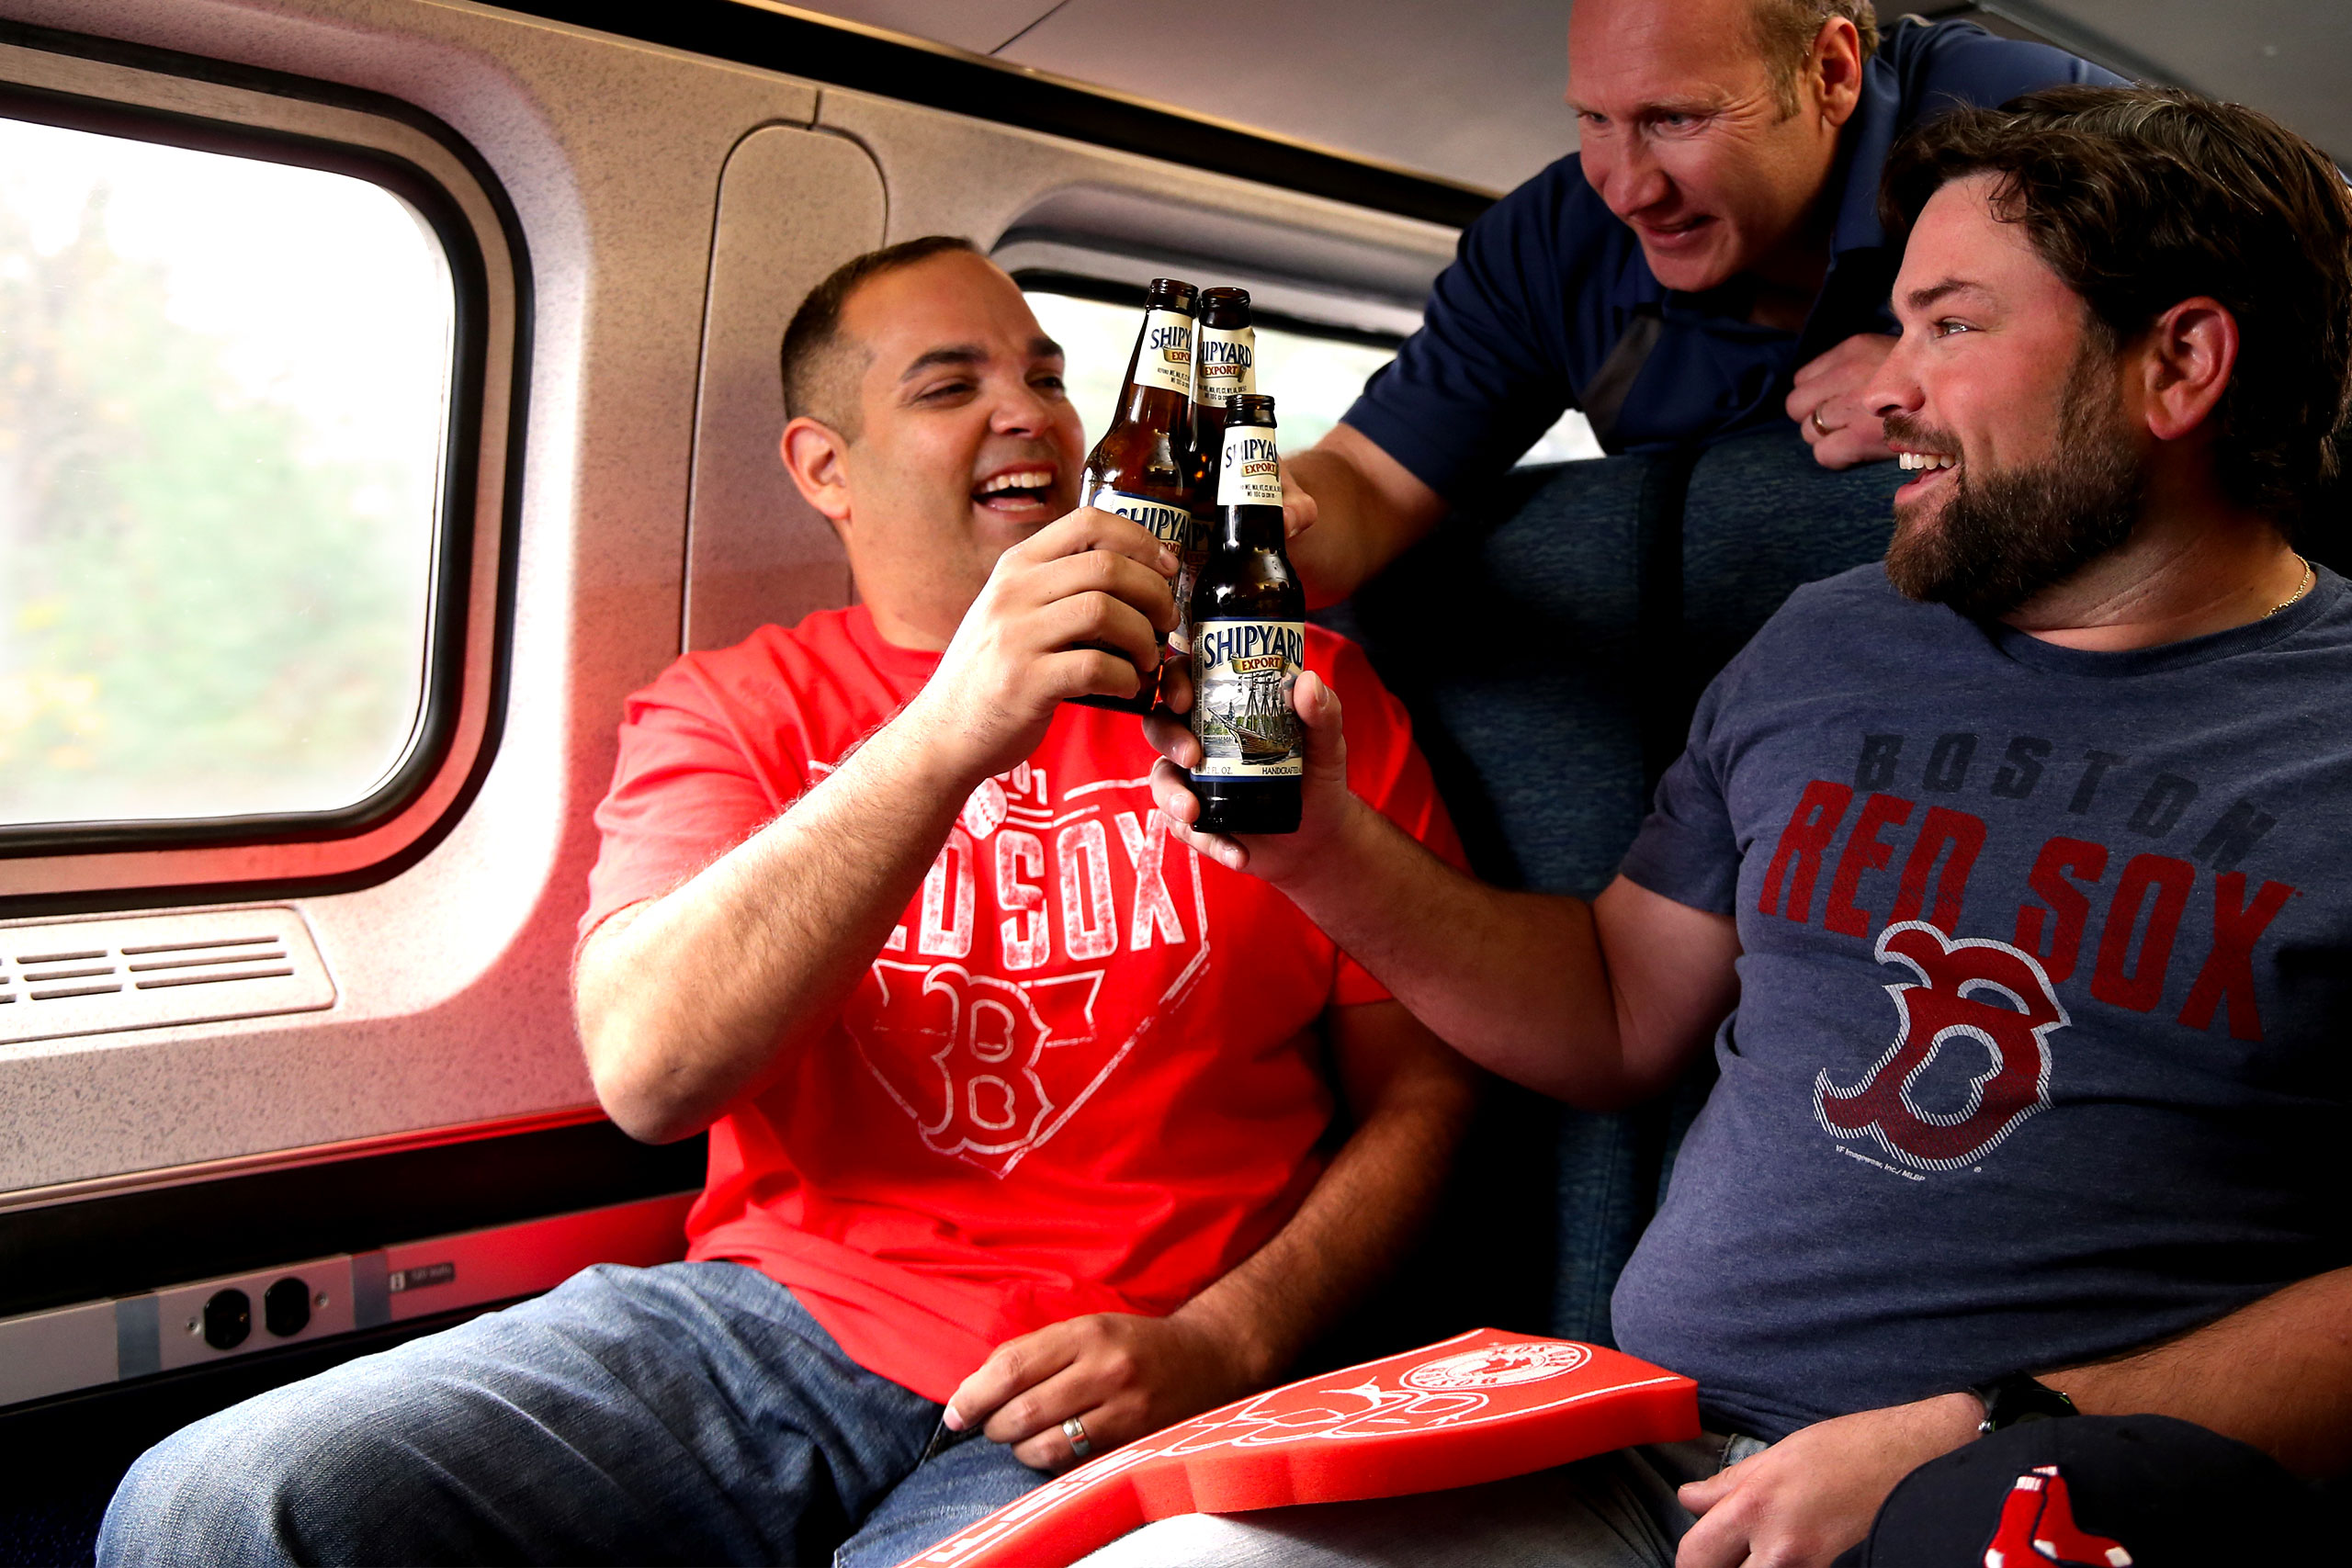 Three men in Red Sox shirts smile and clink bottles together on train.